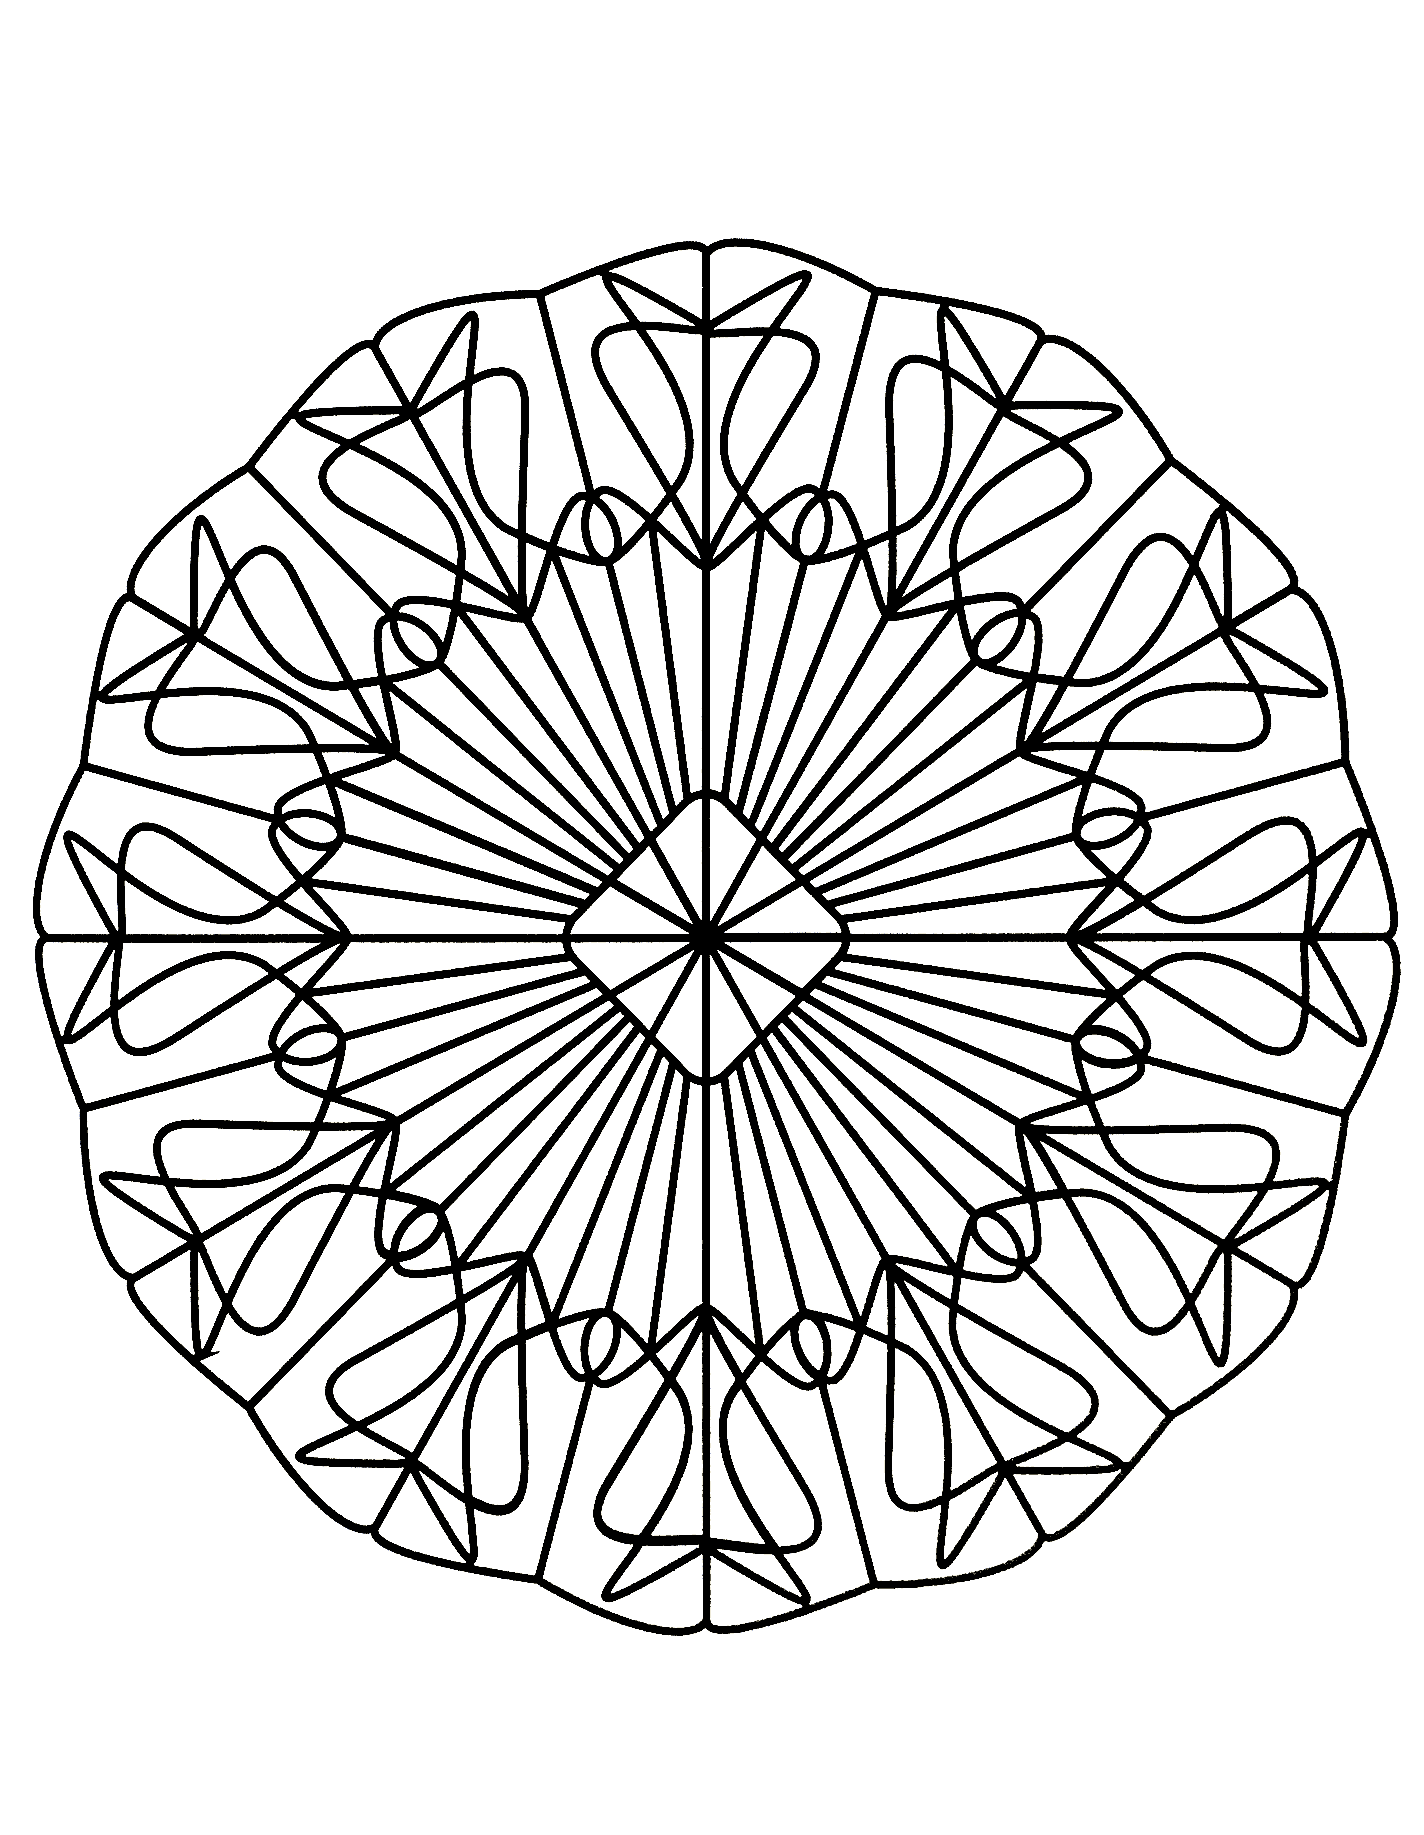 Mandalas to download for free 20